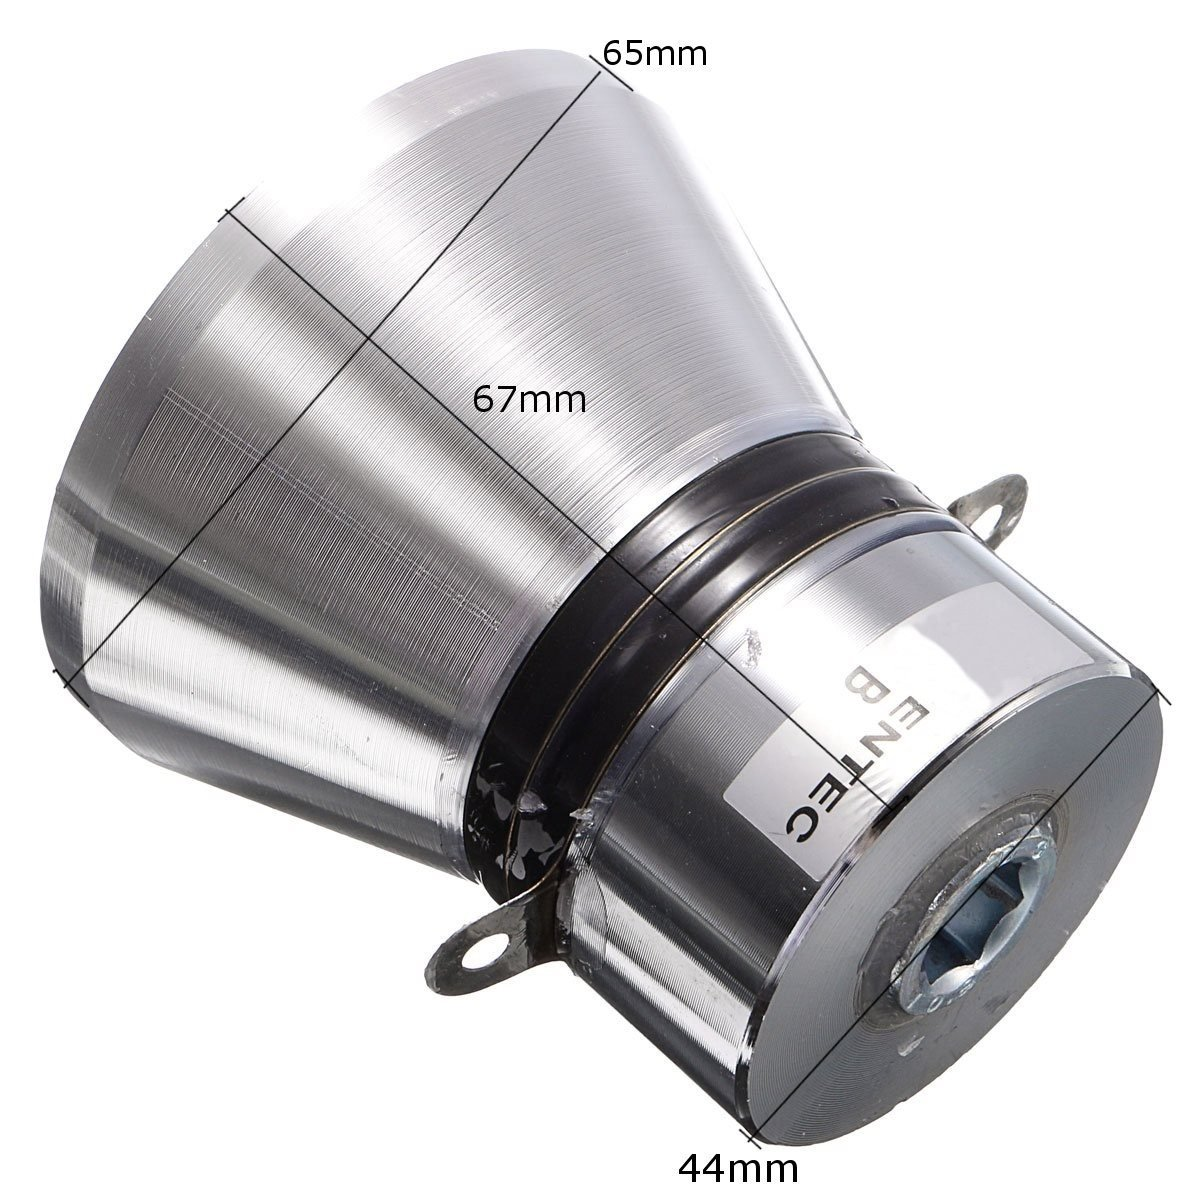 Aluminum Alloy 100W 28KHz Ultrasonic Piezoelectric Transducer Cleaner Silvery Acoustic Components